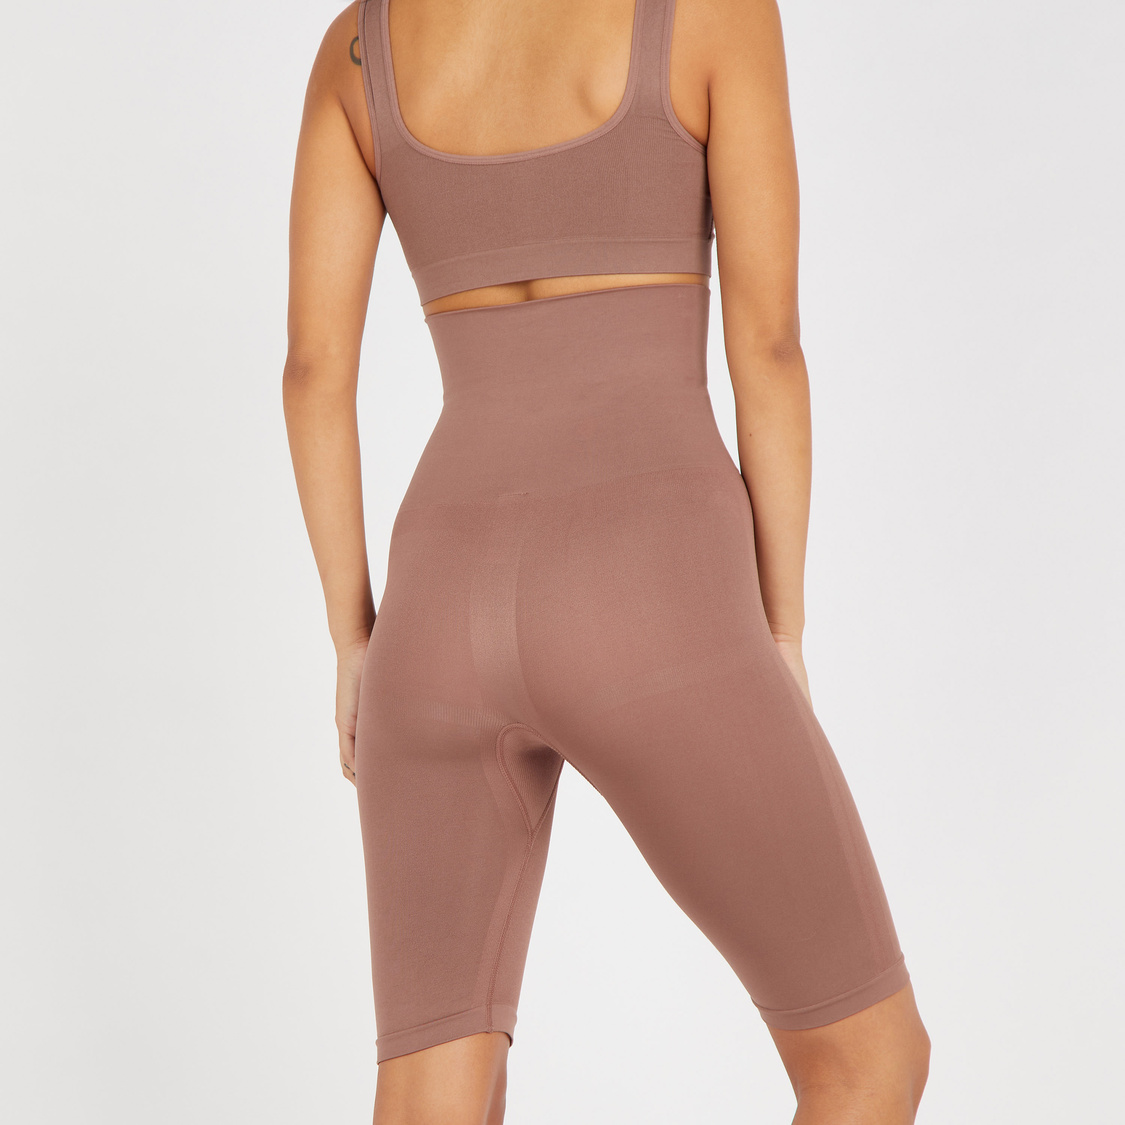 Textured Leg Shapers with Elasticated Waistband